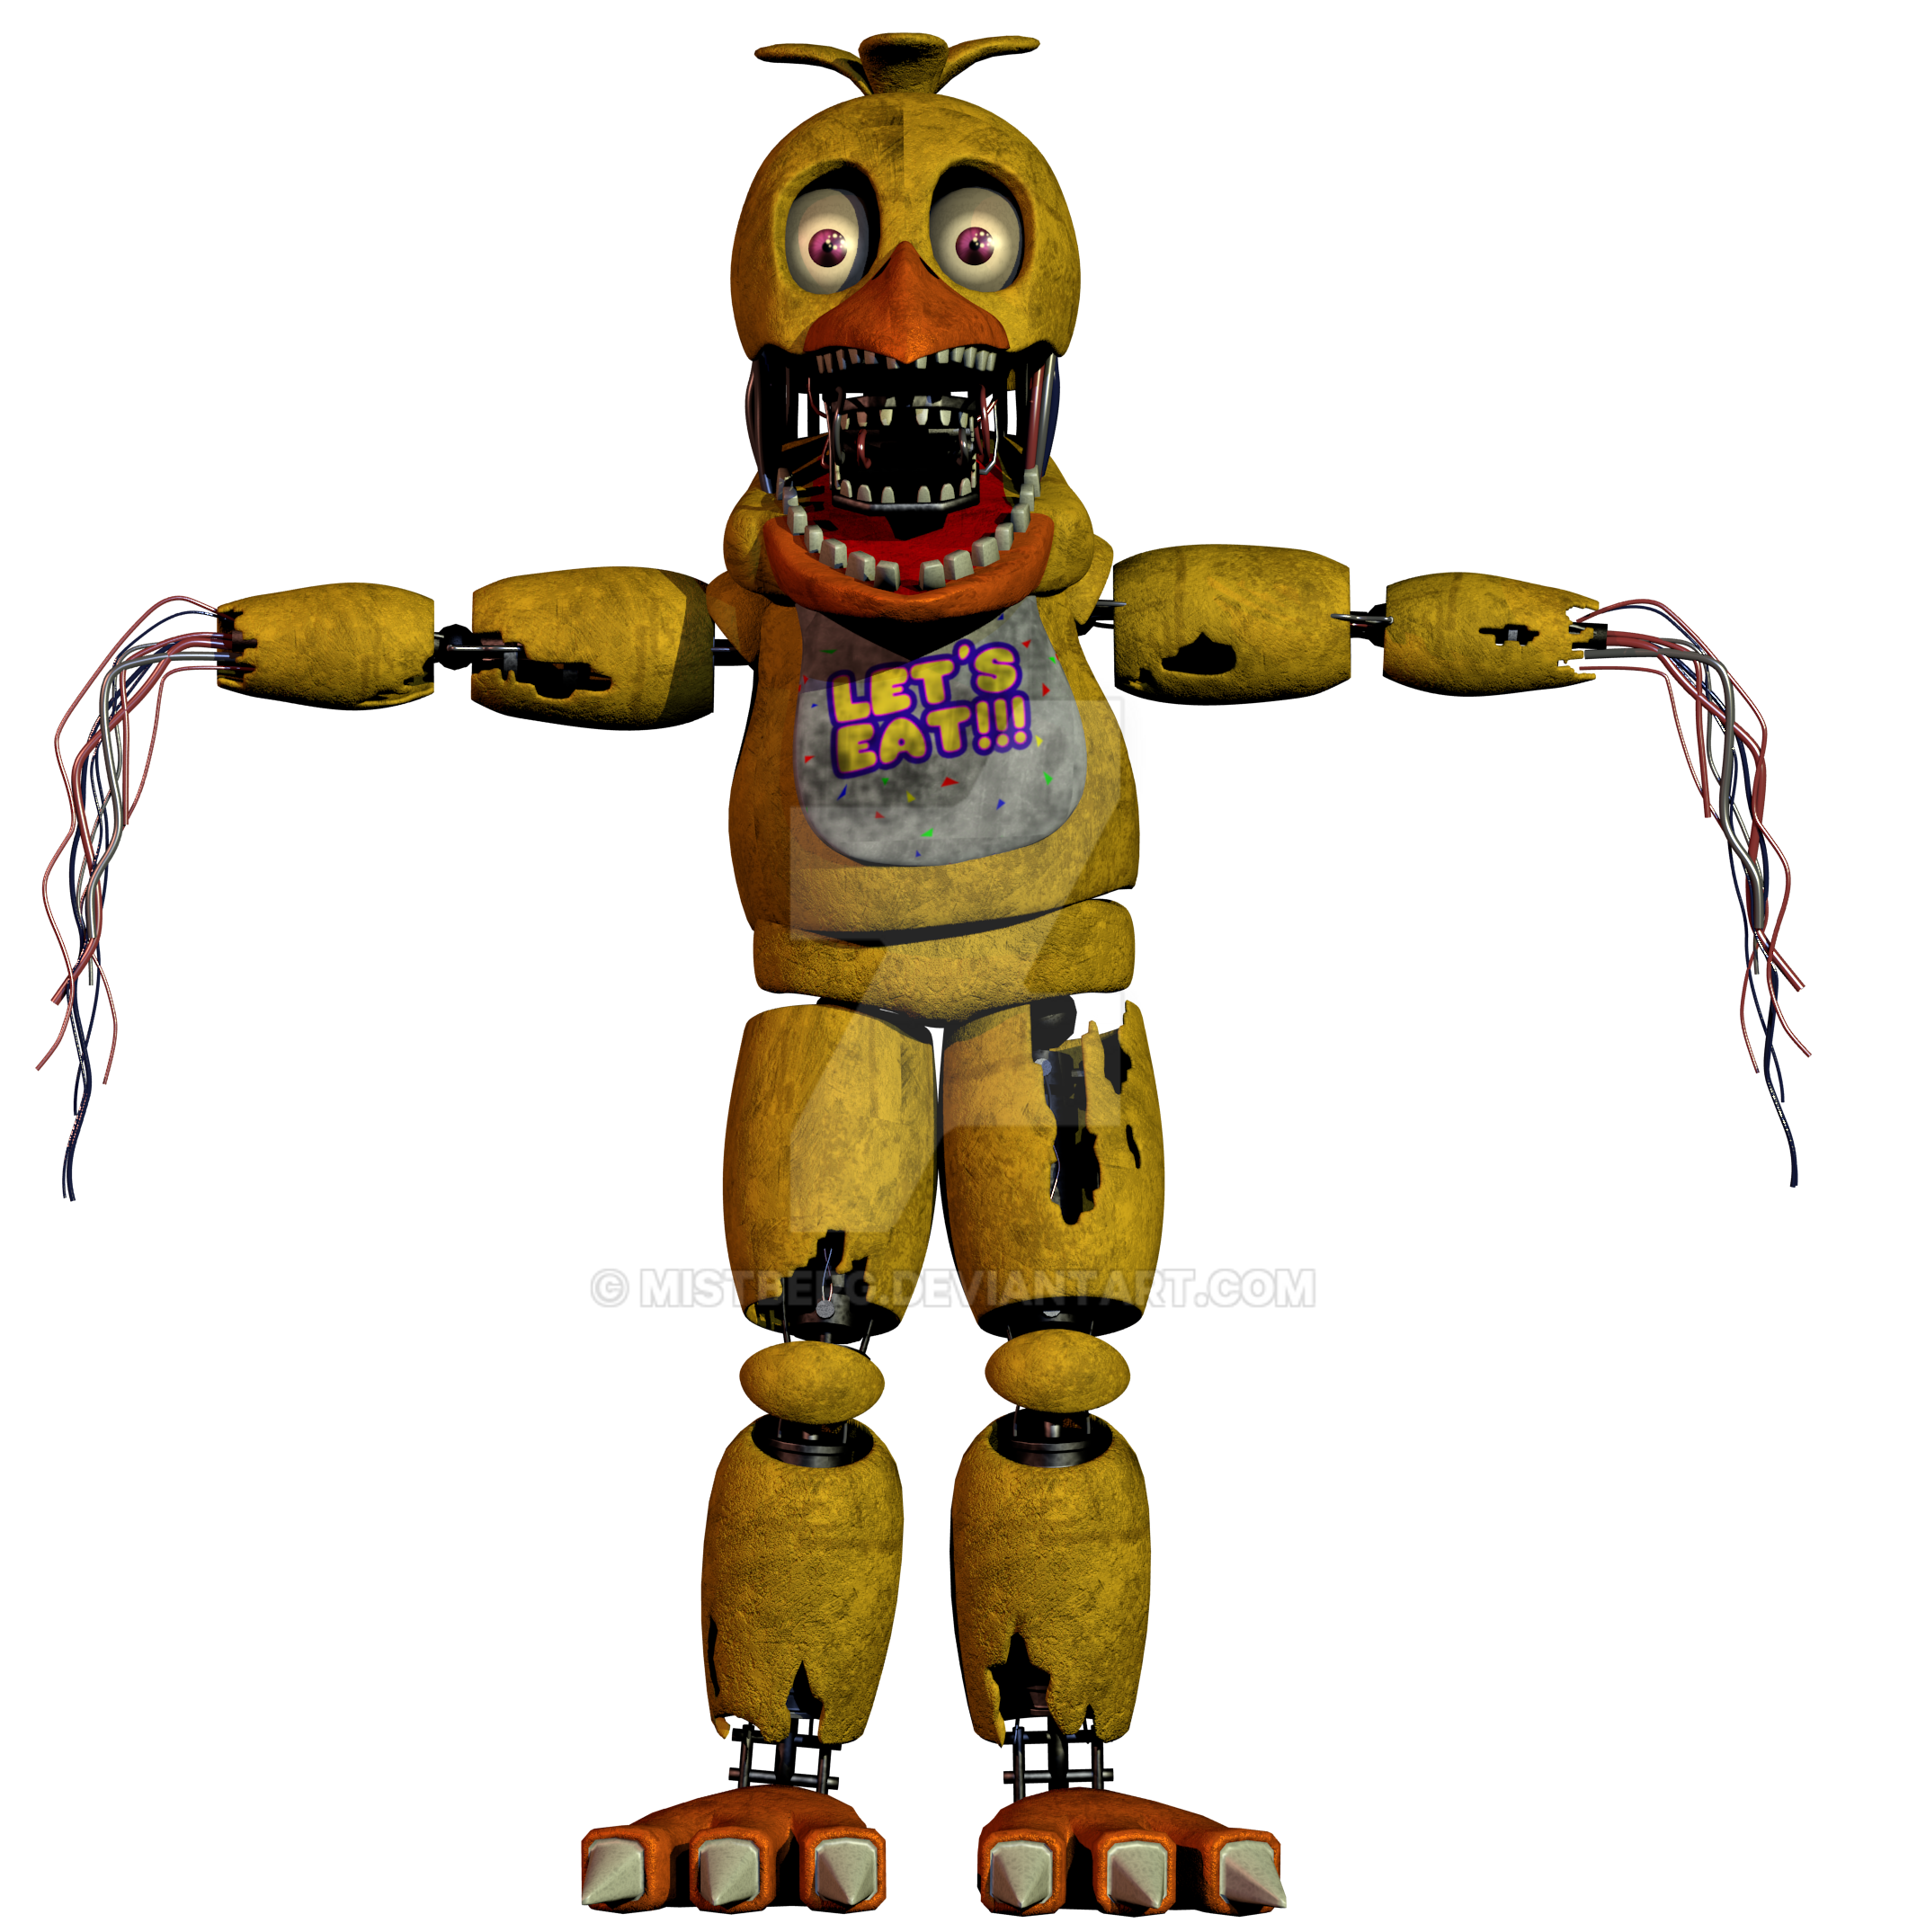 images of fnaf 2 withered chica calto